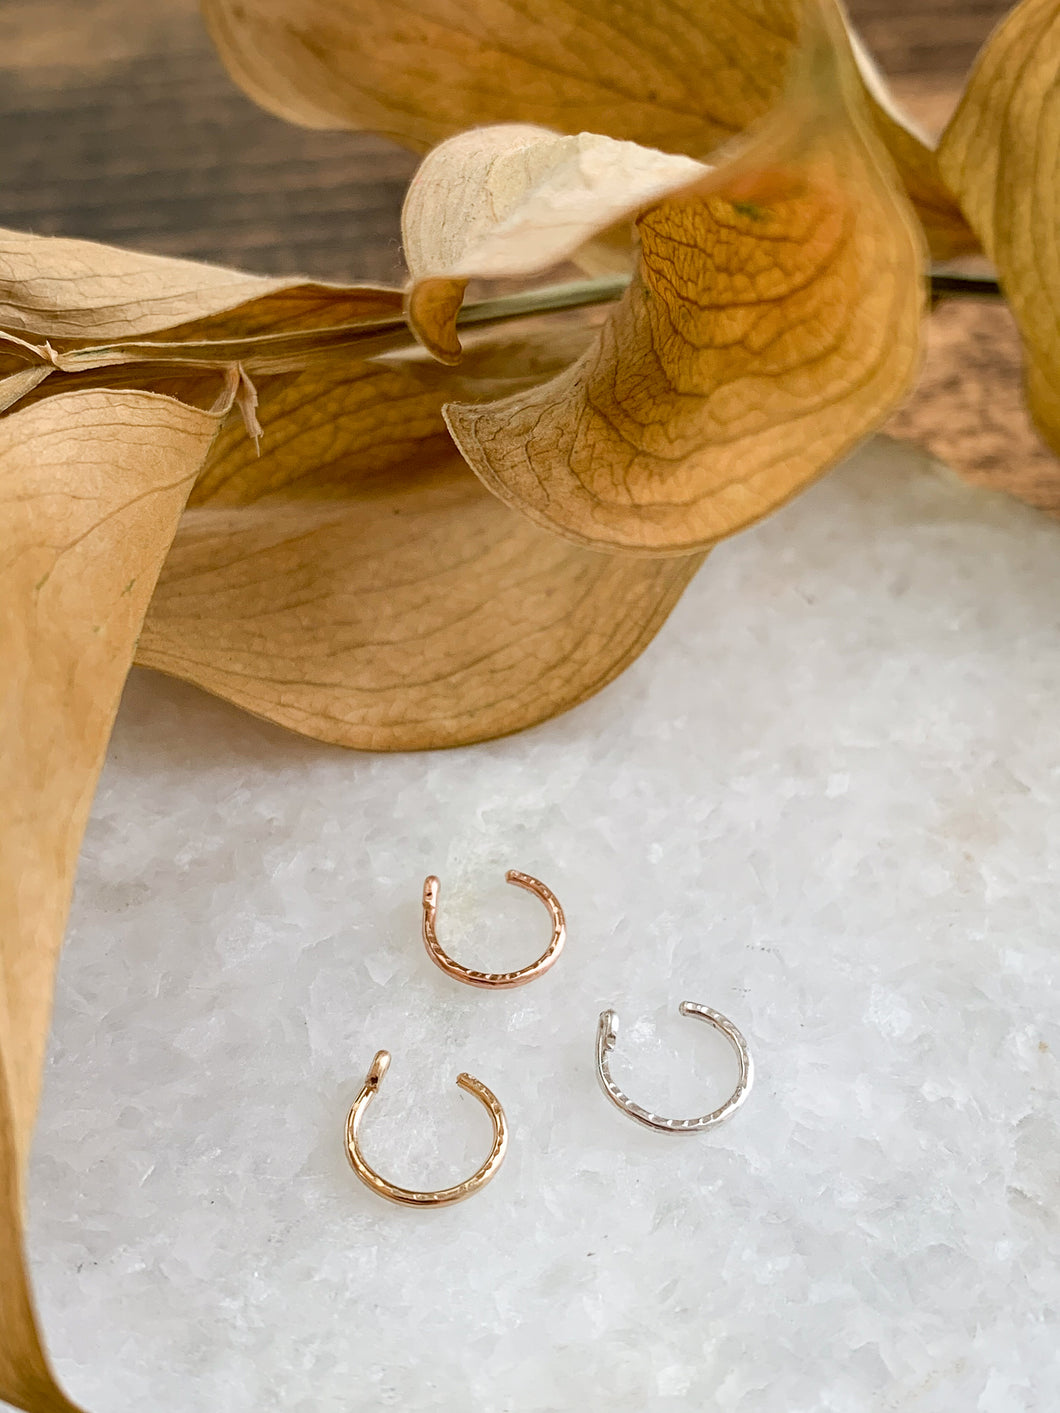 Faux Nose Hoop // Ear Cuff - Gold, Rose Gold or Sterling Silver - by Via Francesca